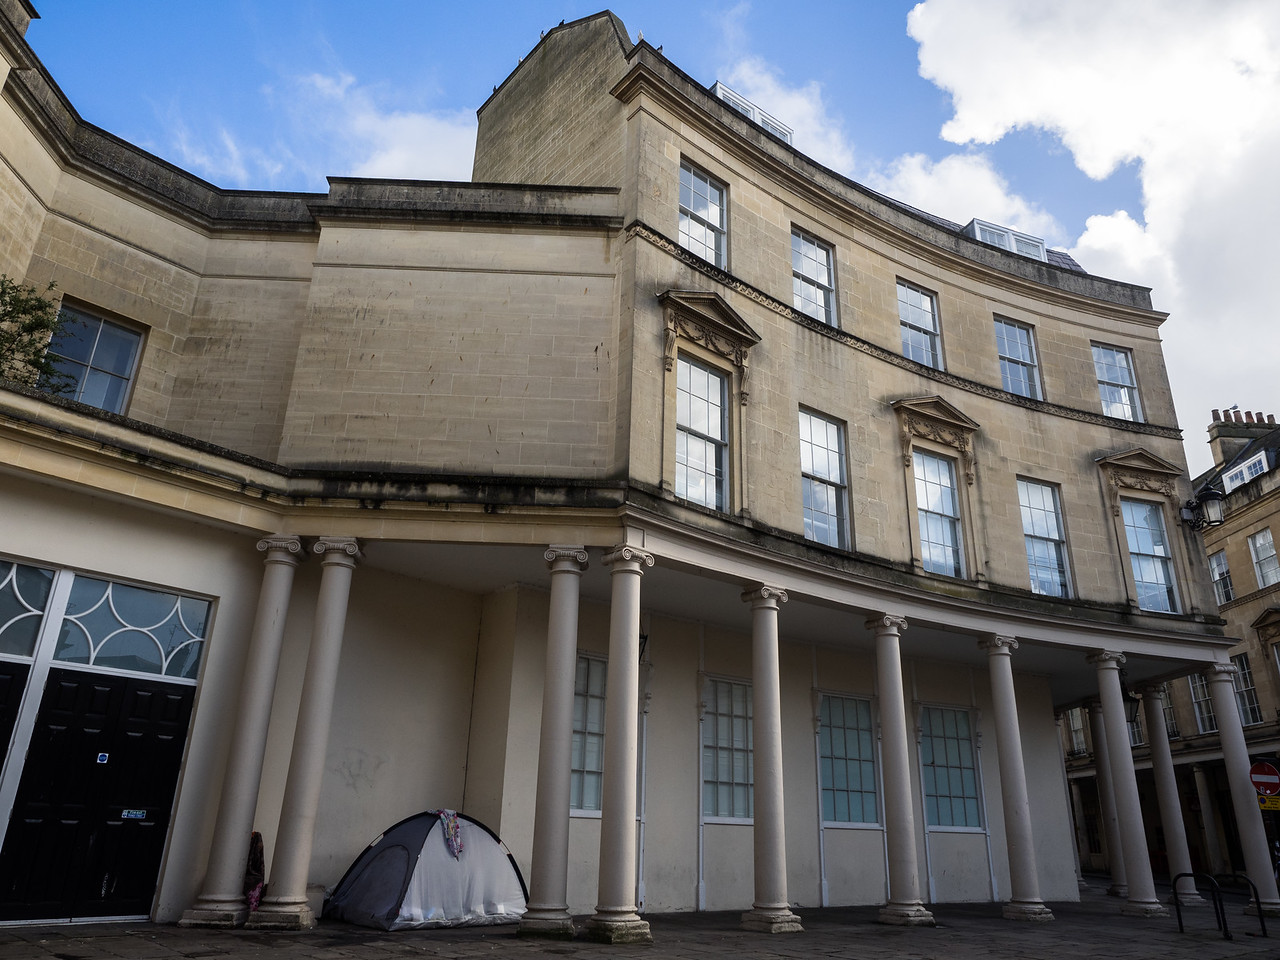 Beautiful buildings in Bath contrast with the tents of the homeless.